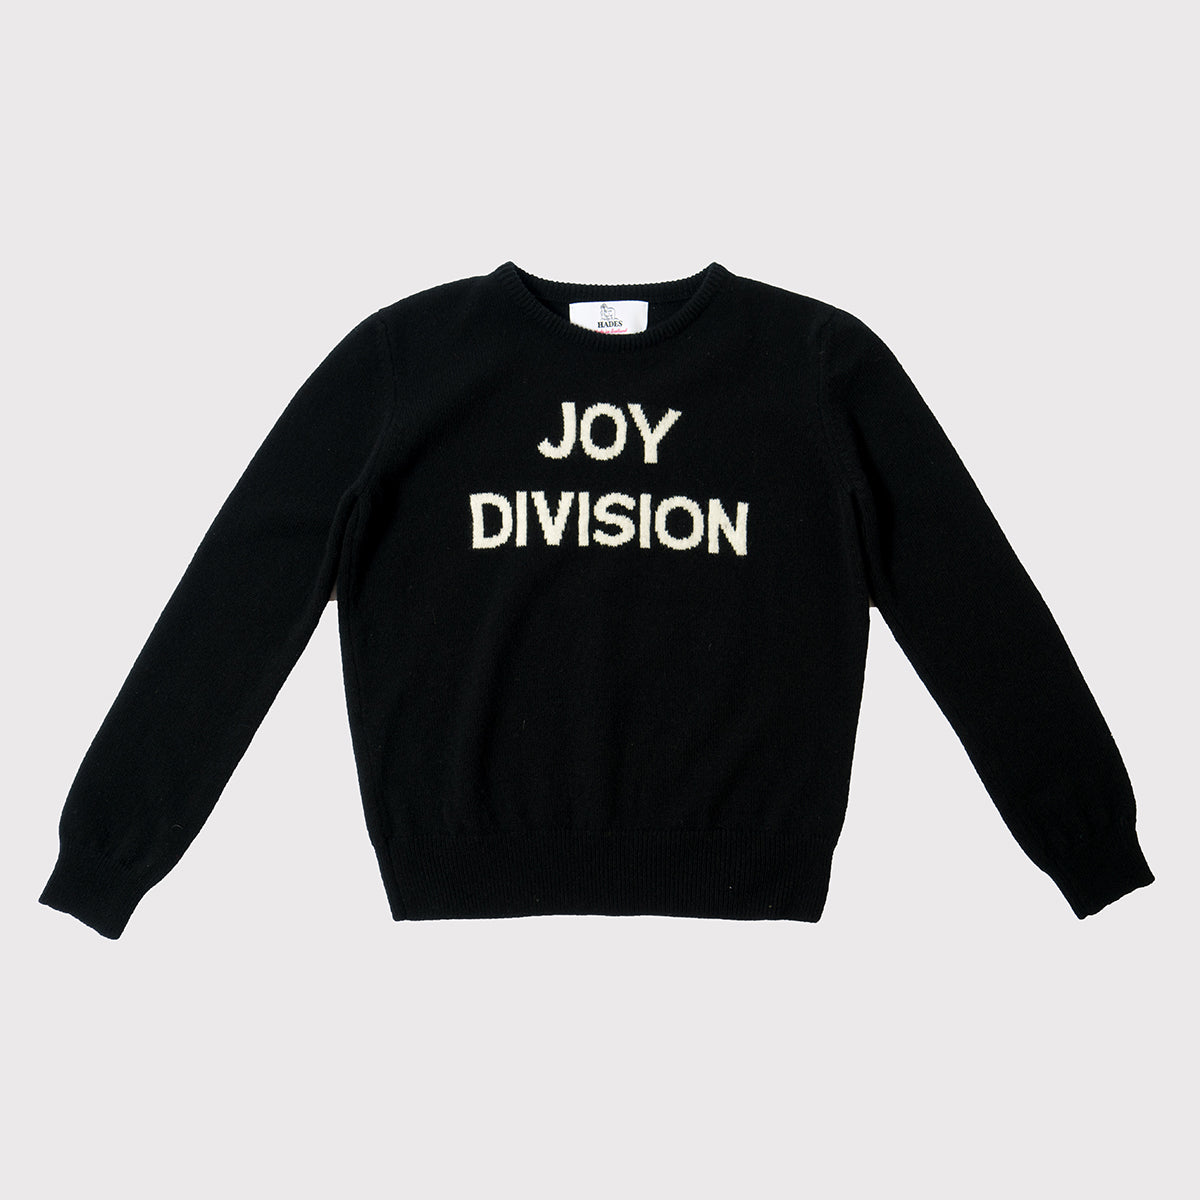 Joy Division | Black & White | Women's | SOLD OUT